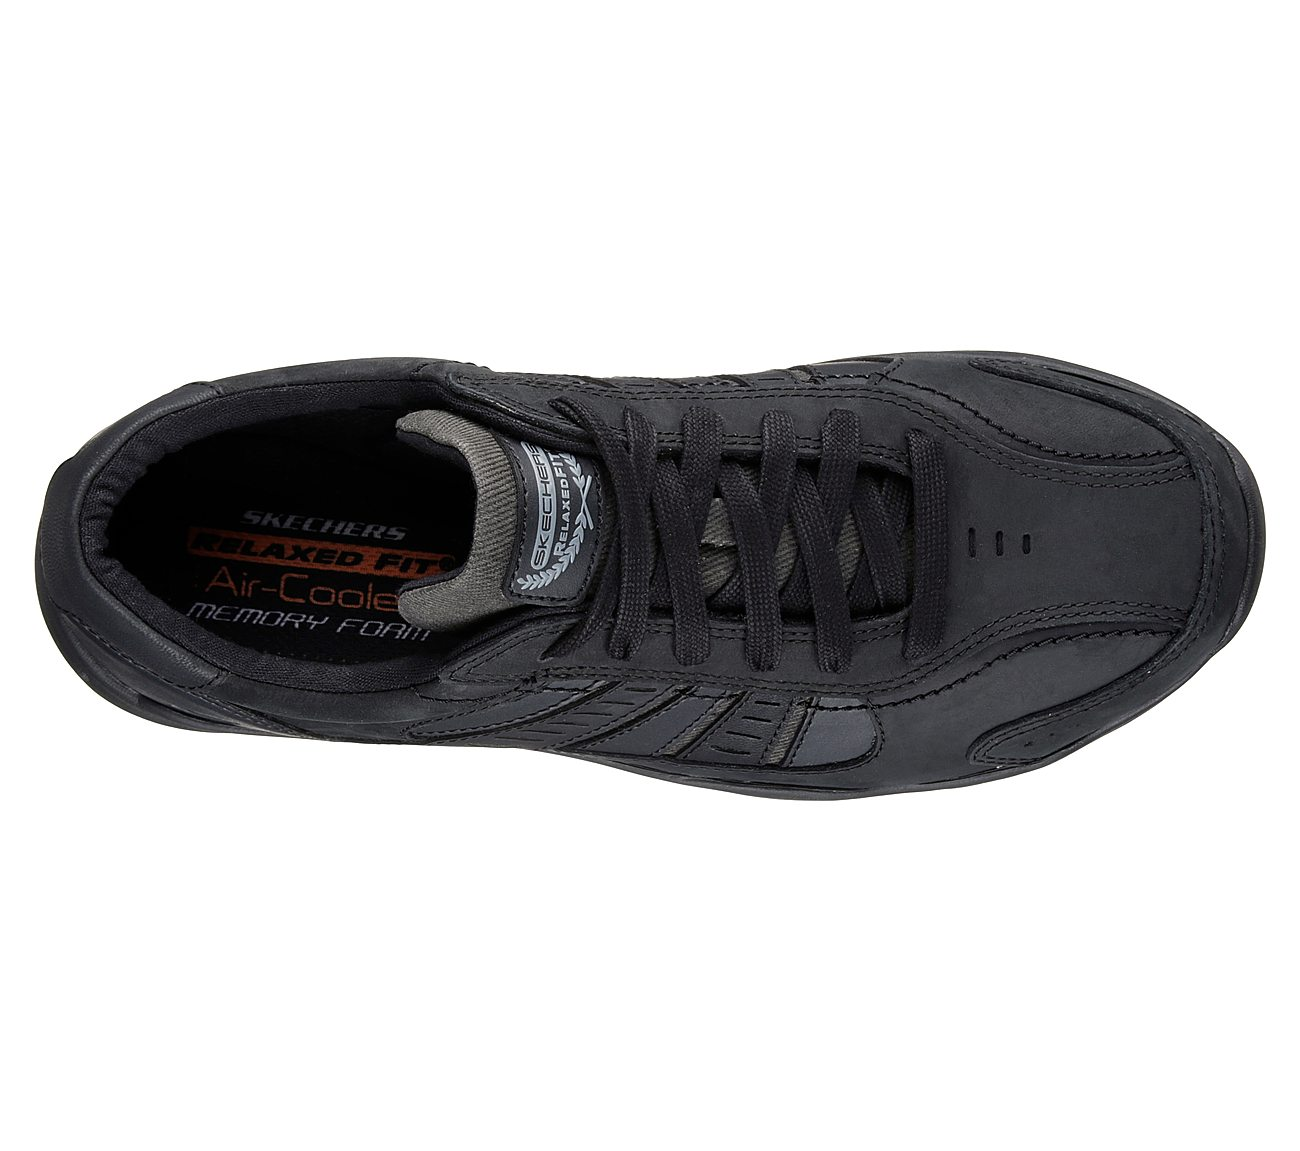 80 Fit € Shoes Usa Relaxed Larson Casuals 00 Only Skechers Buy w84qCPP